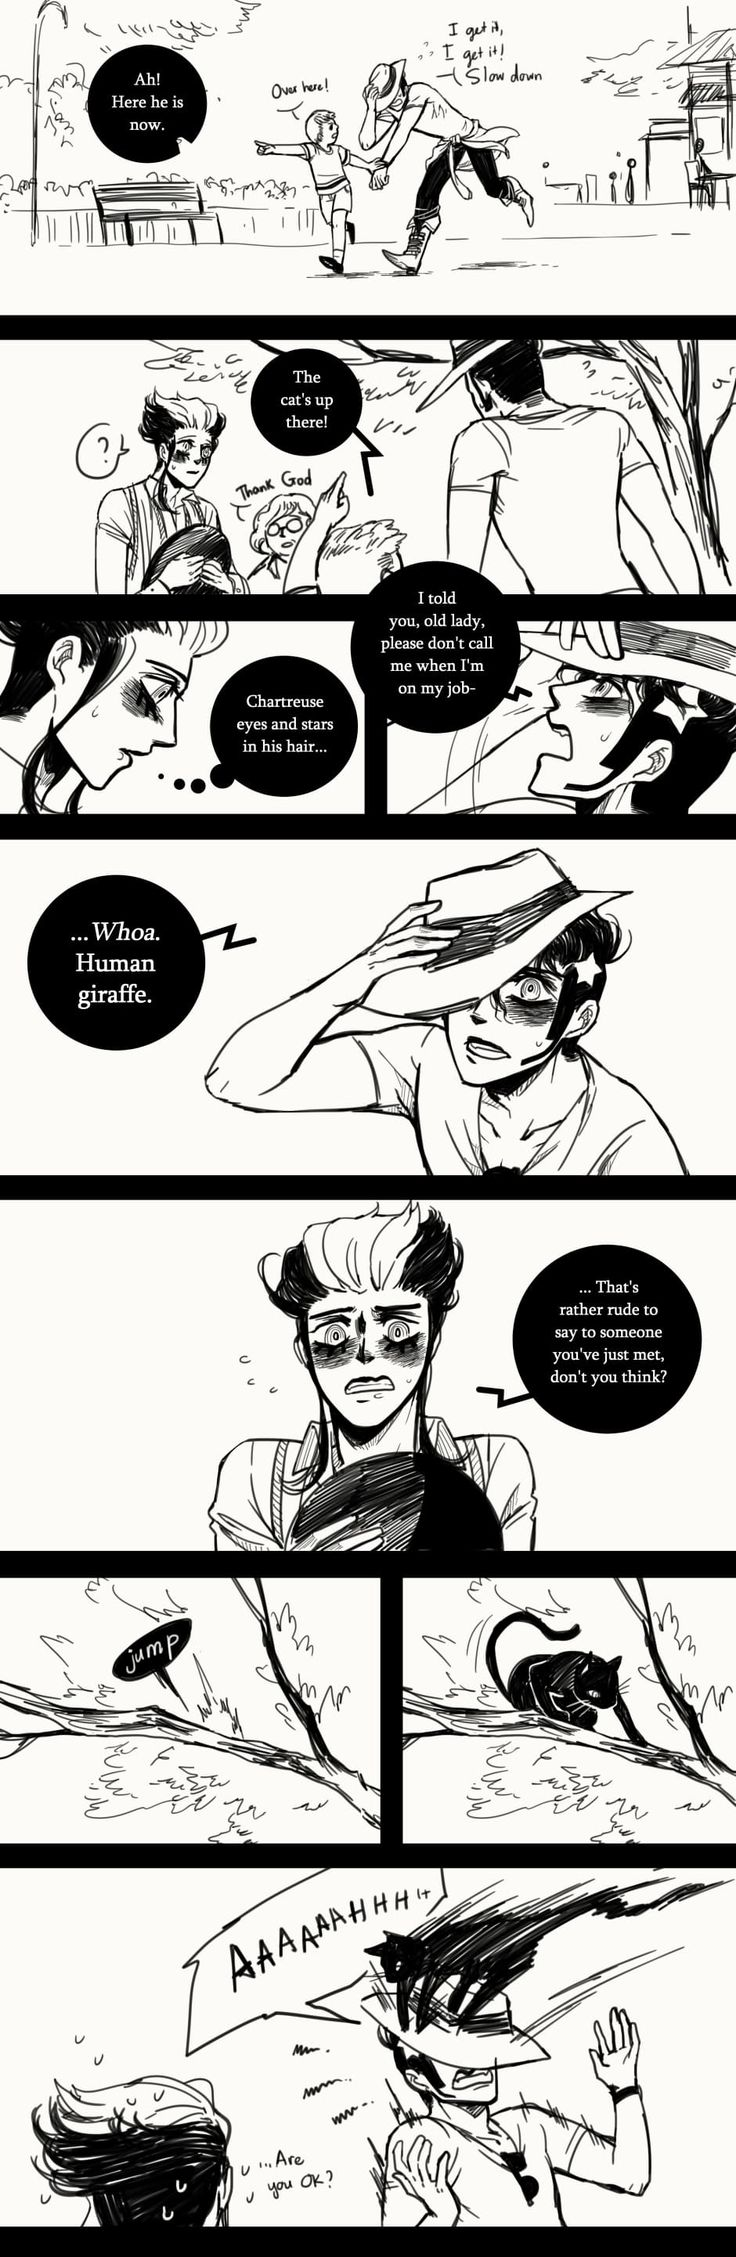 A Matter of Life and Death :: Special Episode: 1 Year Anniversary (Part 1) | Tapastic Comics - image 3